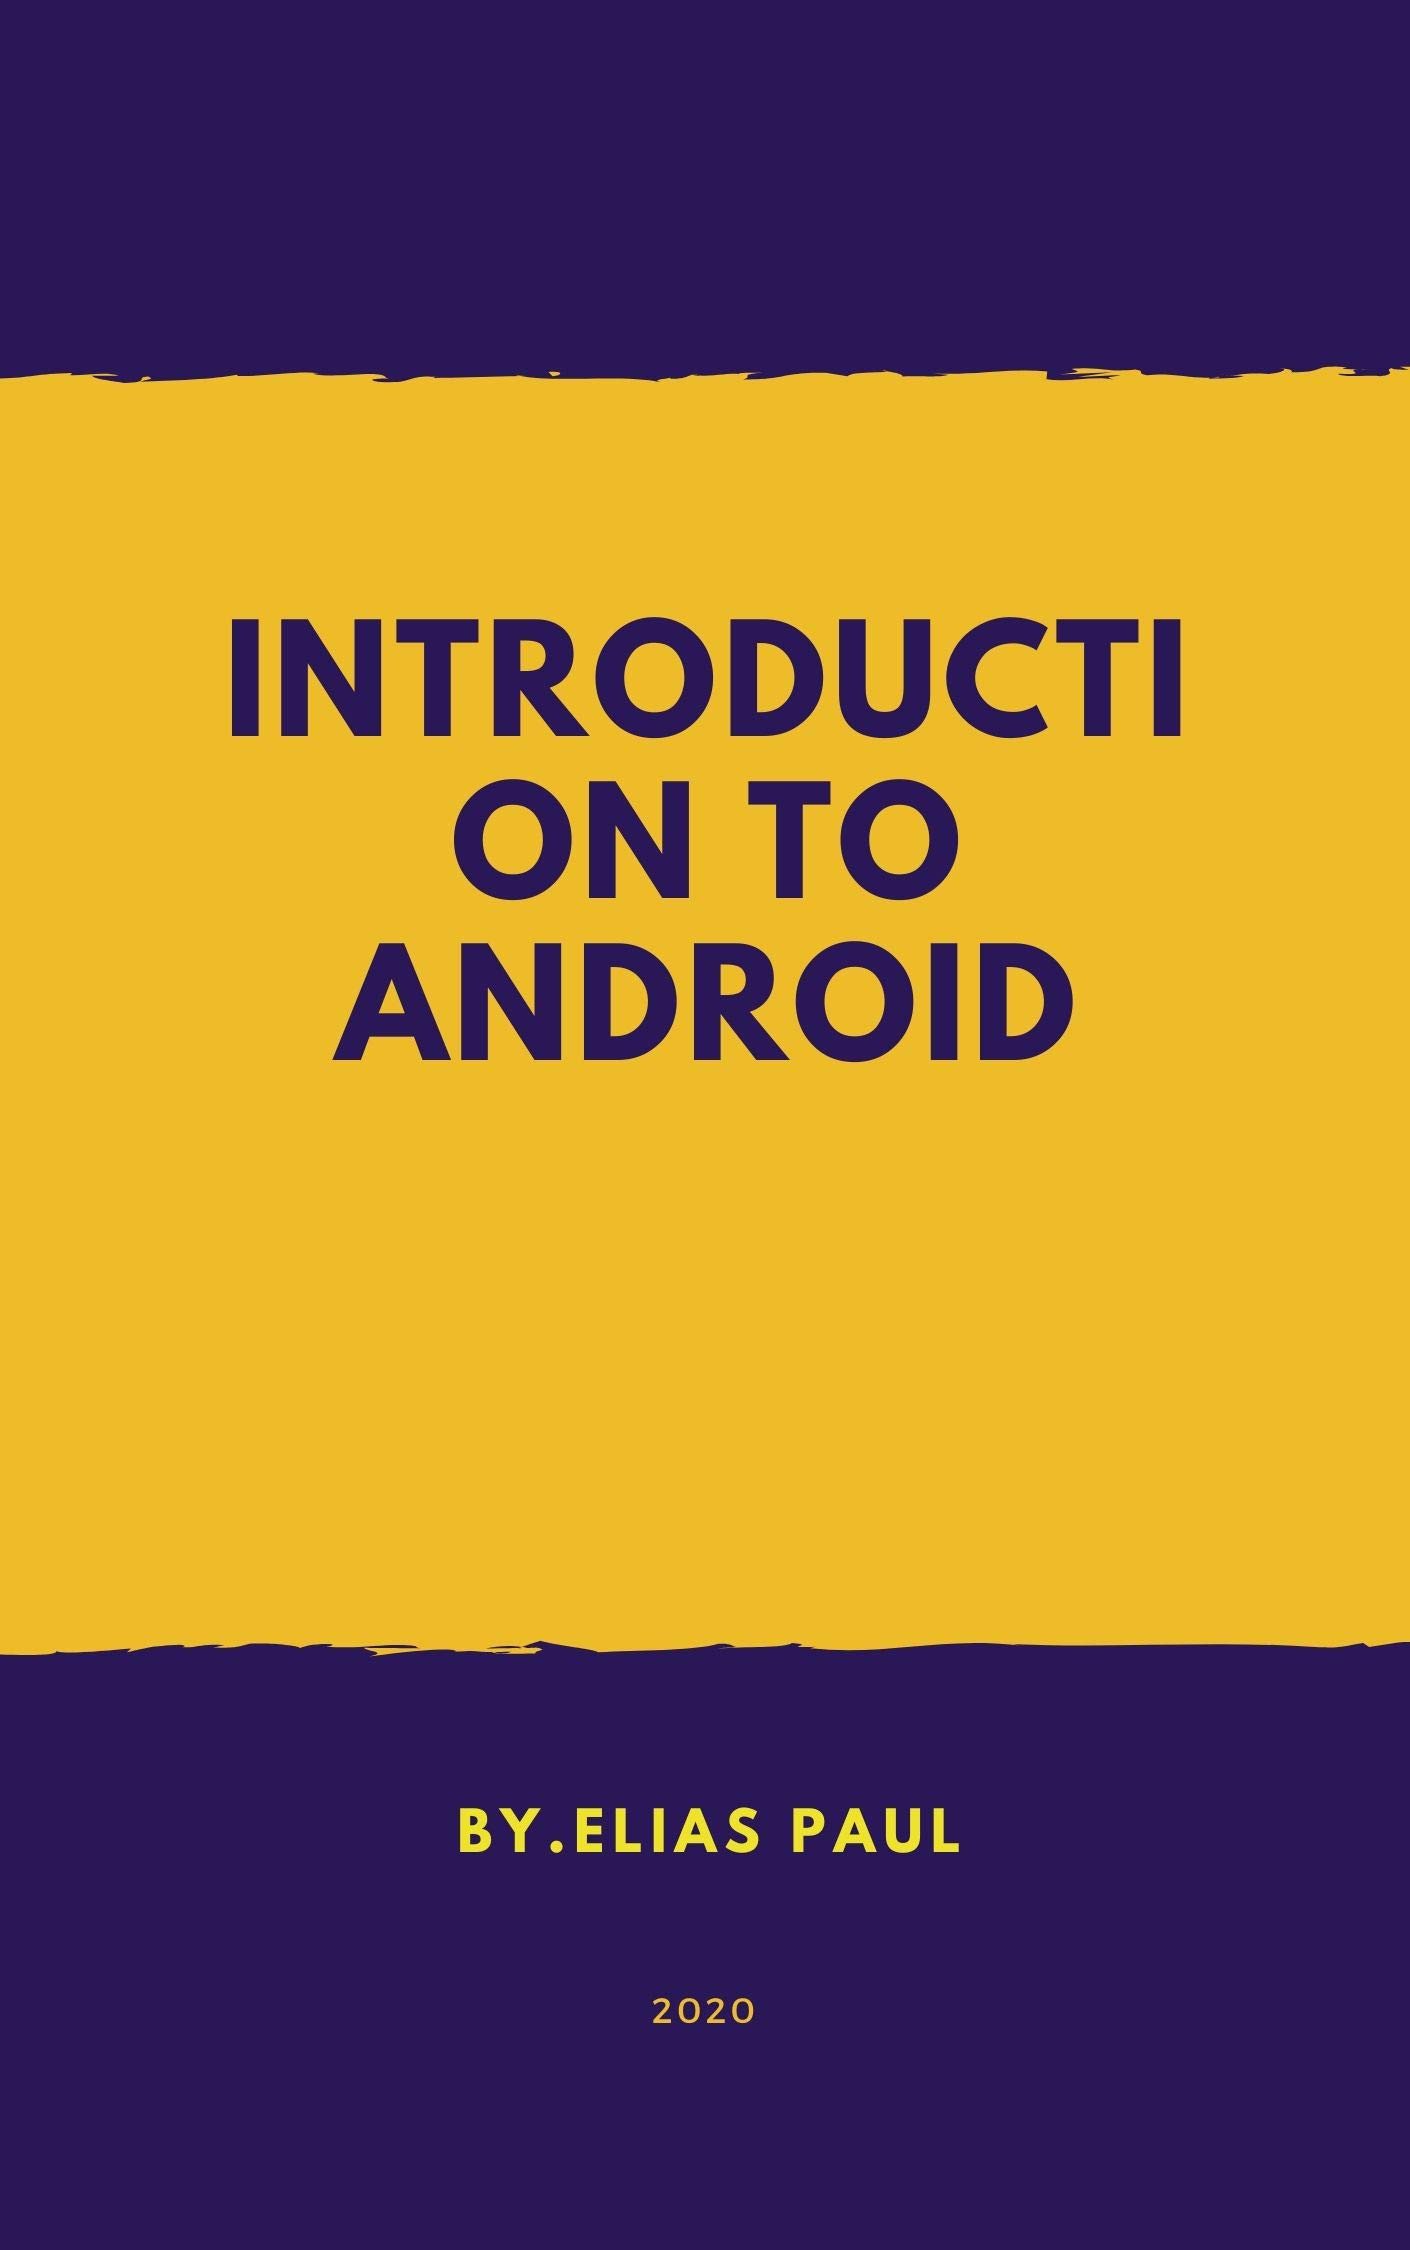 Android Programming for Beginners: Introduction to Android